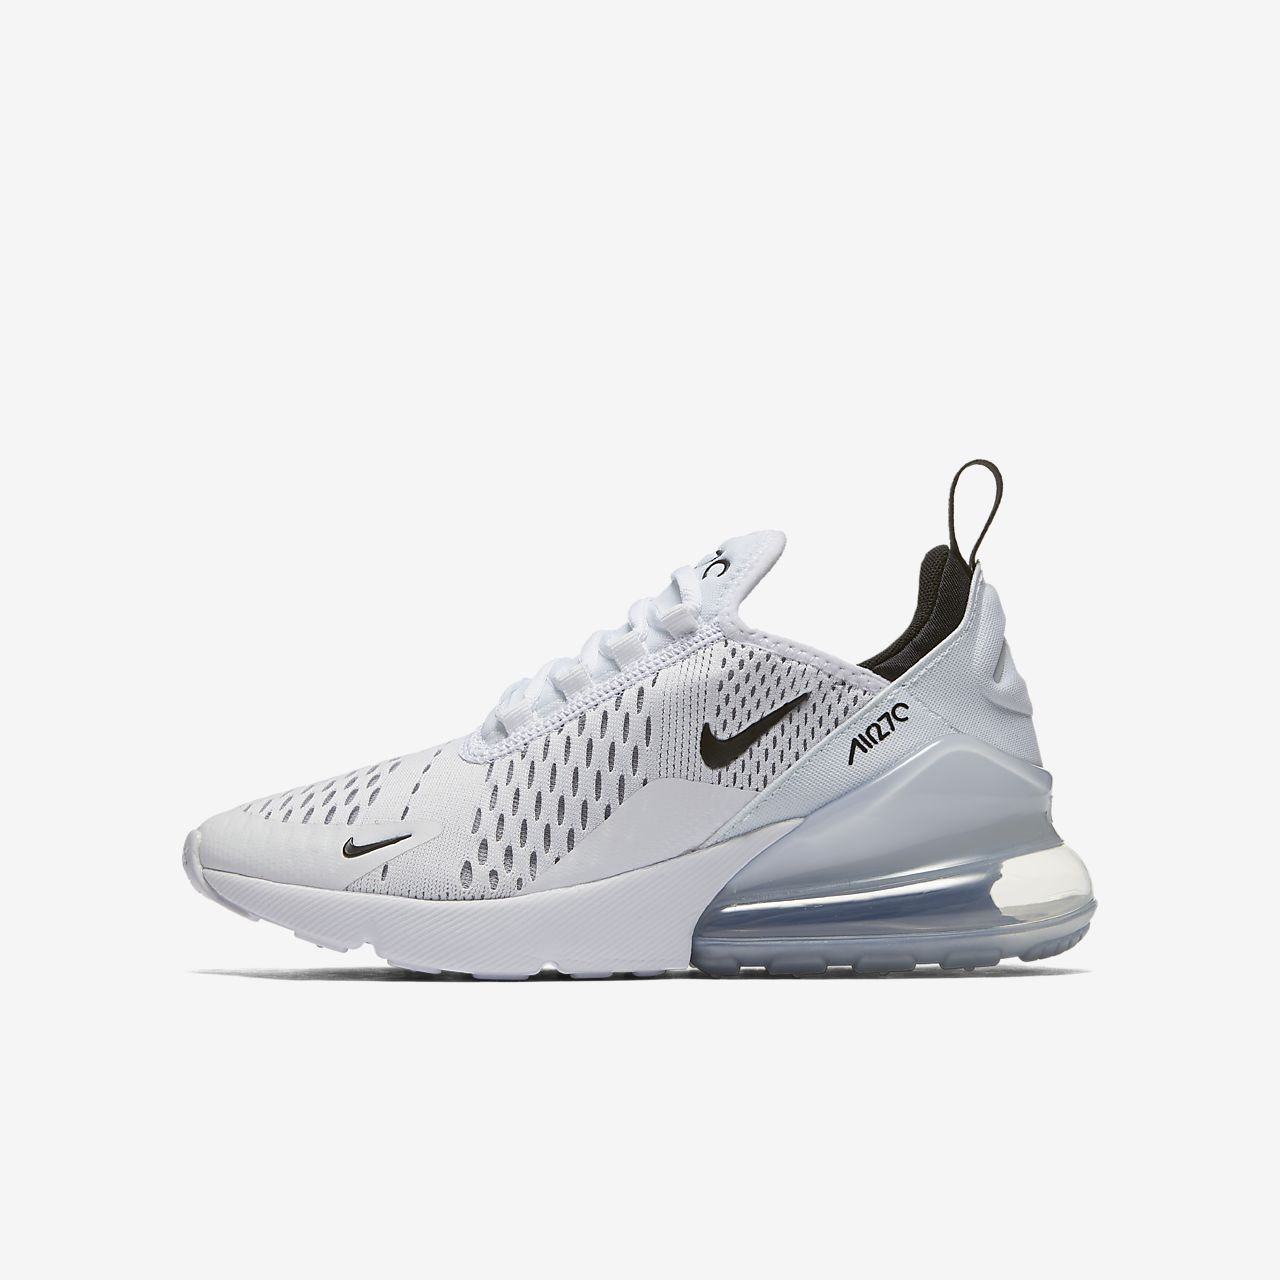 competitive price b3d79 229c6 Cheap Nike Air Max 270 White Shoes for Sale 2018